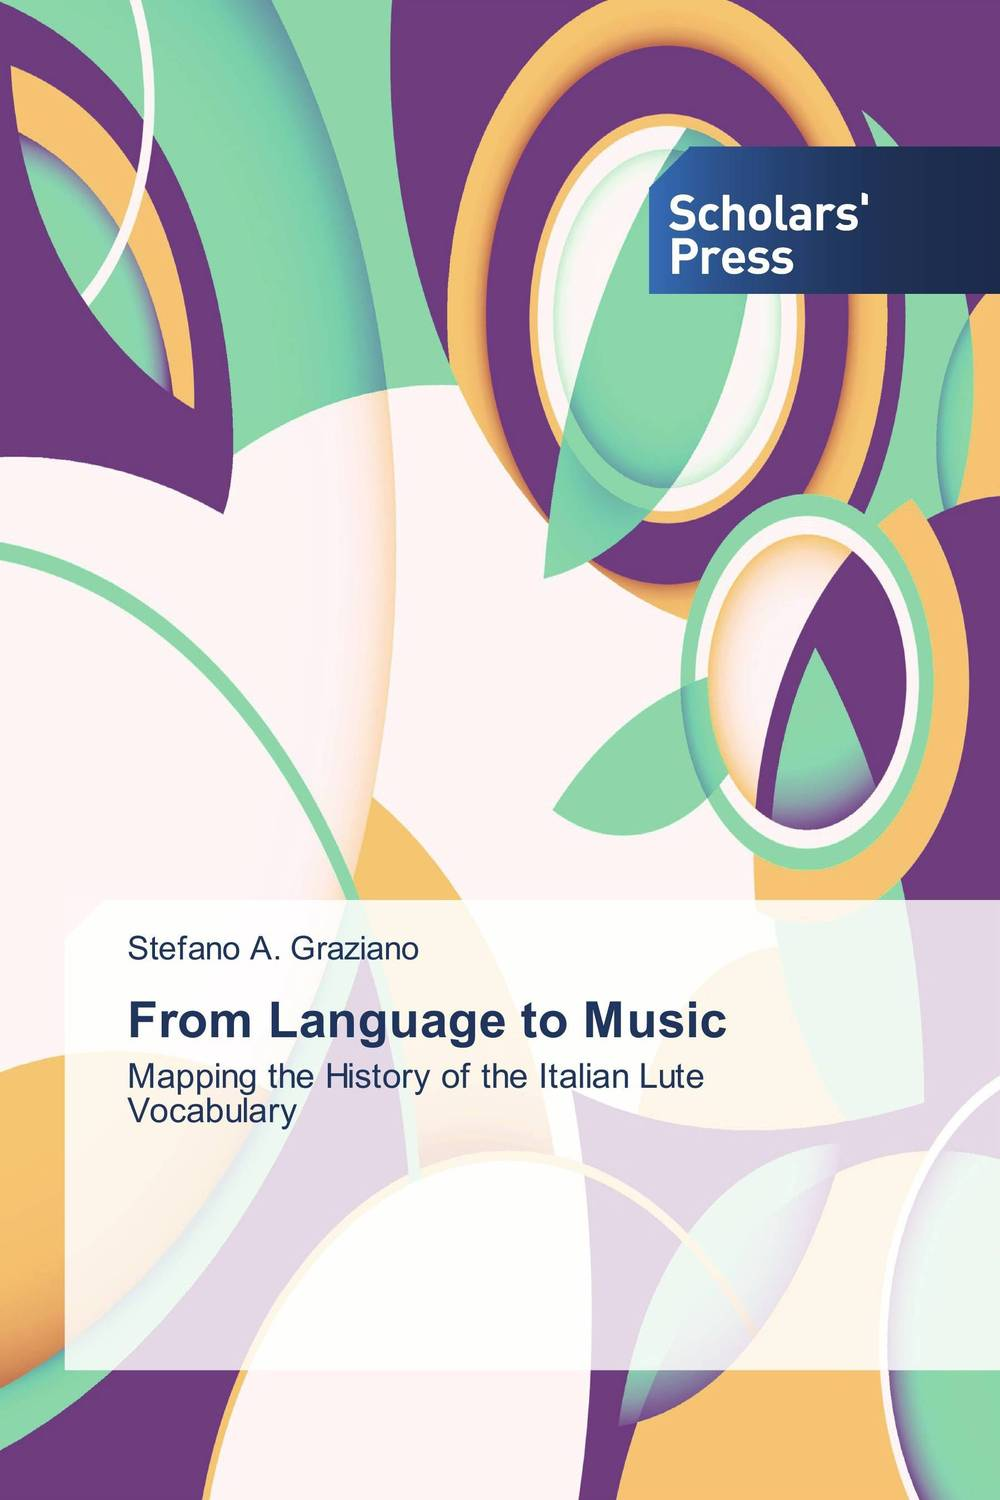 From Language to Music